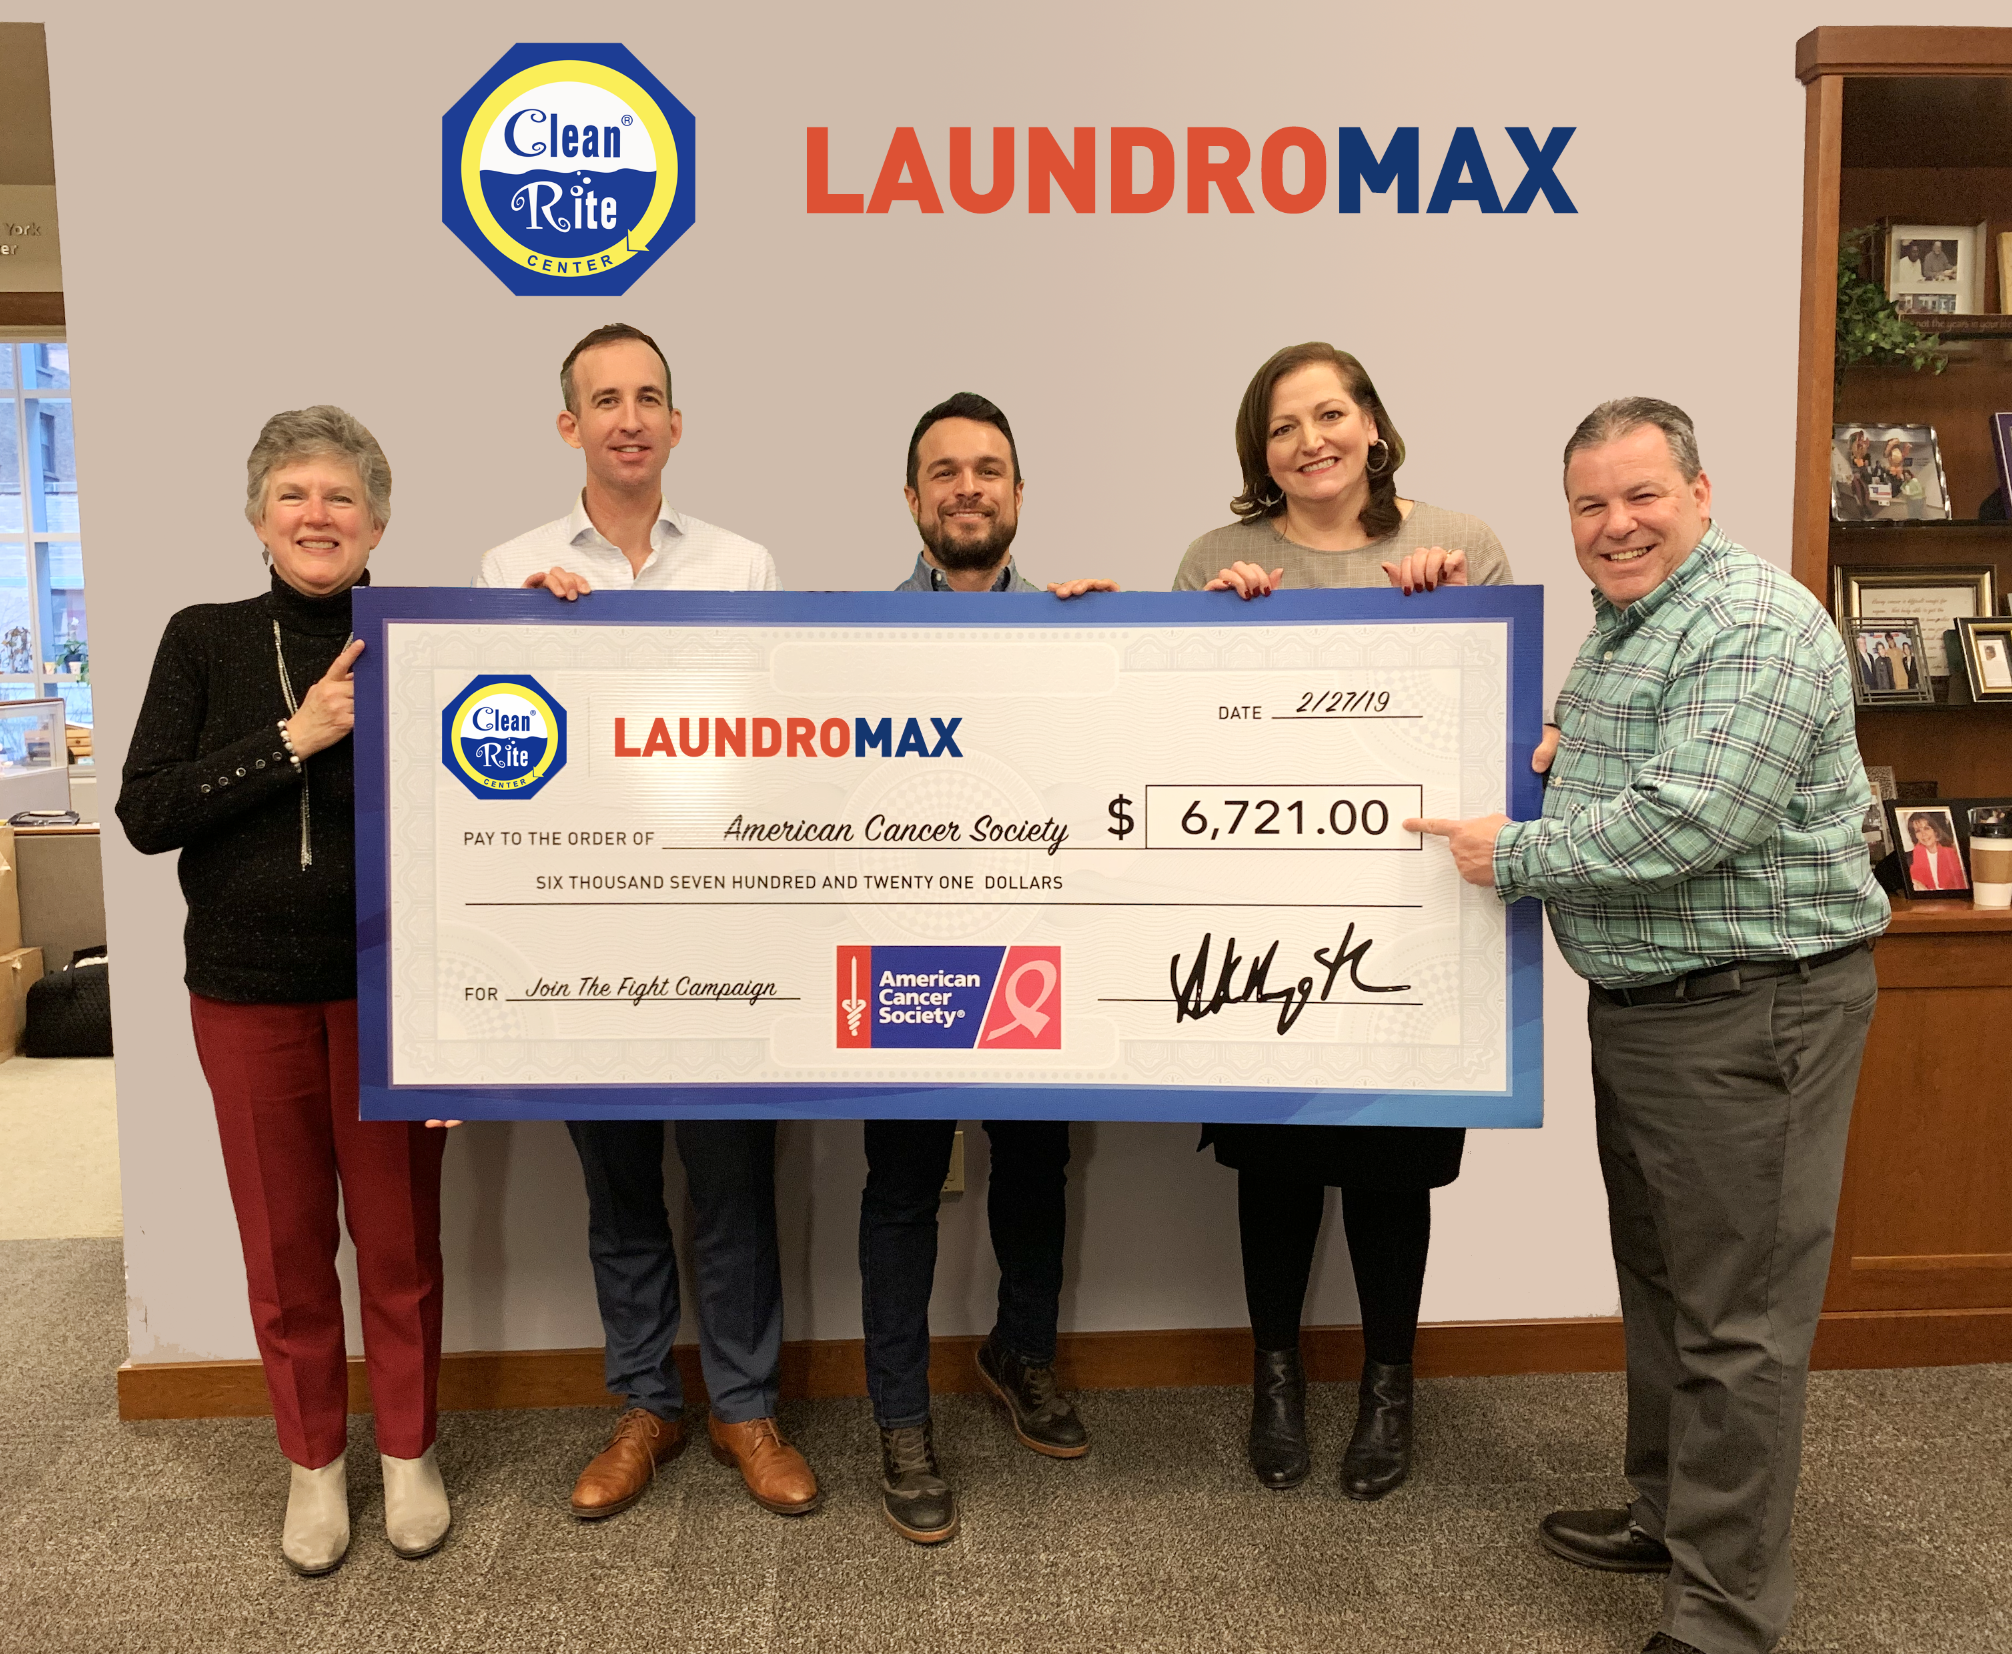 Laundromax And The American Cancer Society 2018